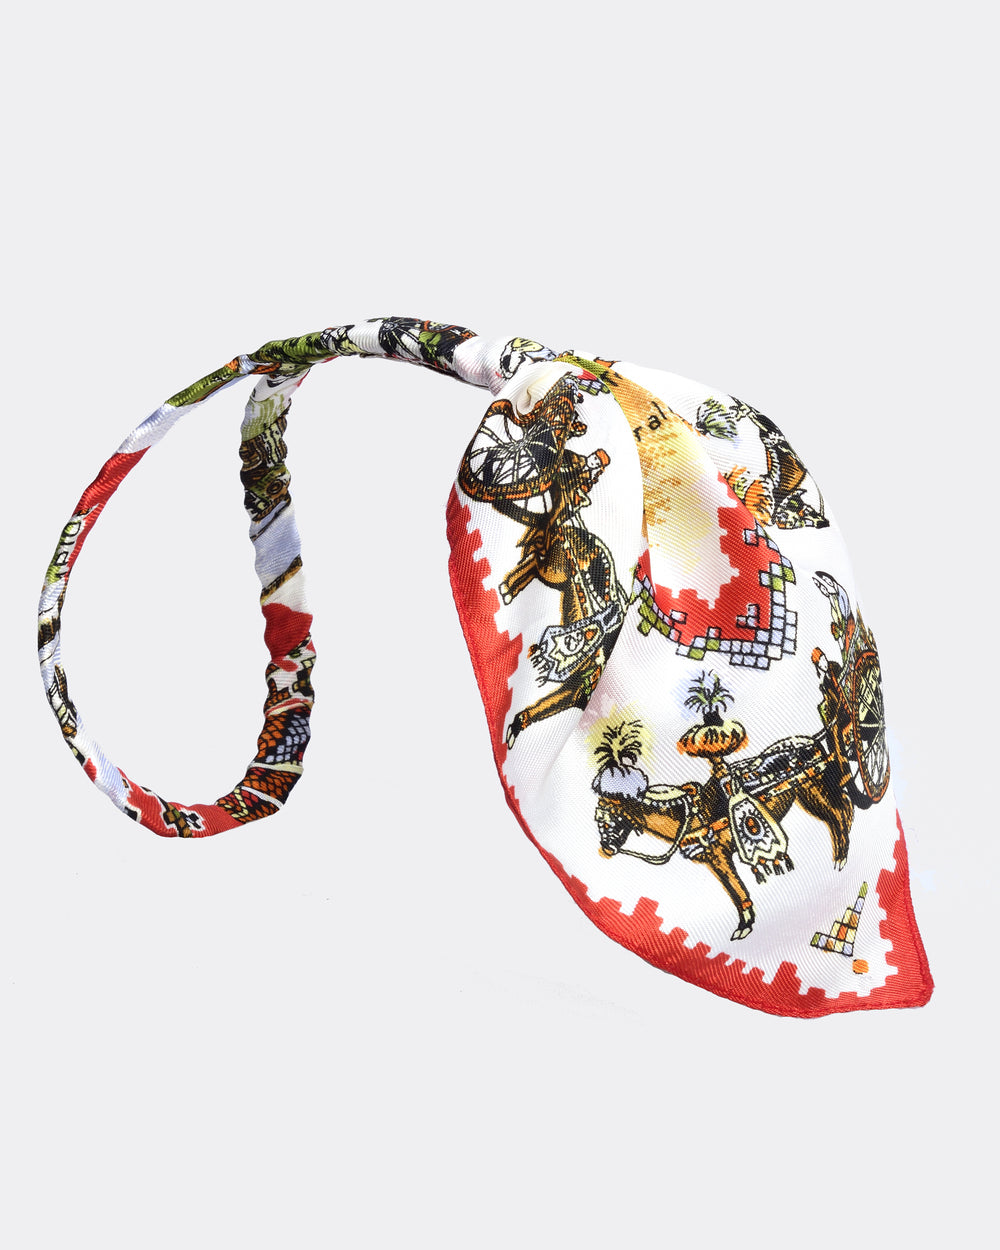 MISS GUMMO Red Foulard Headpiece